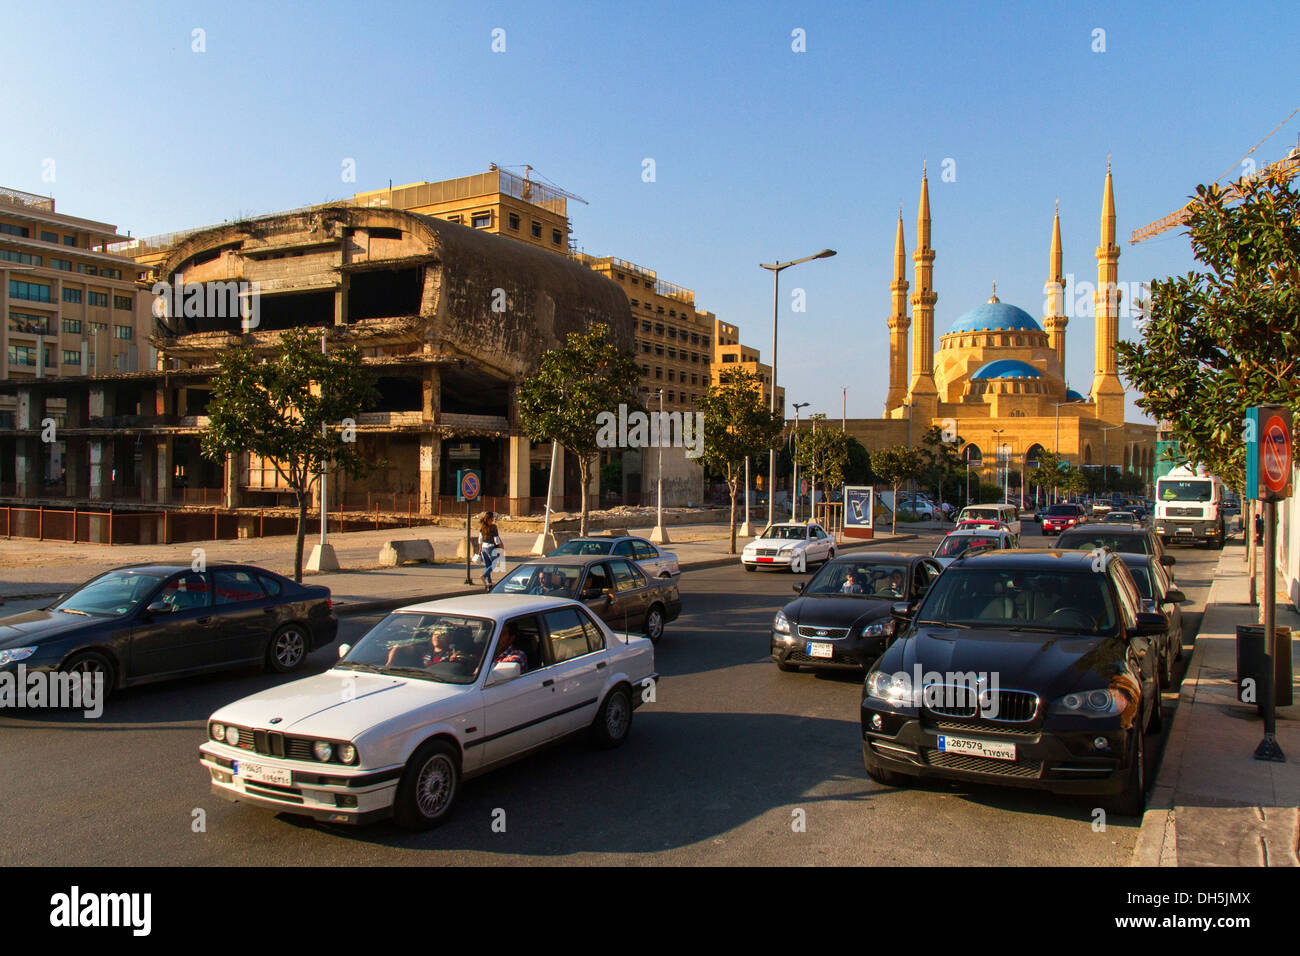 Ruins of Beirut City Center, Mohammed al-Amin Mosque at the rear, Beirut, Lebanon - Stock Image